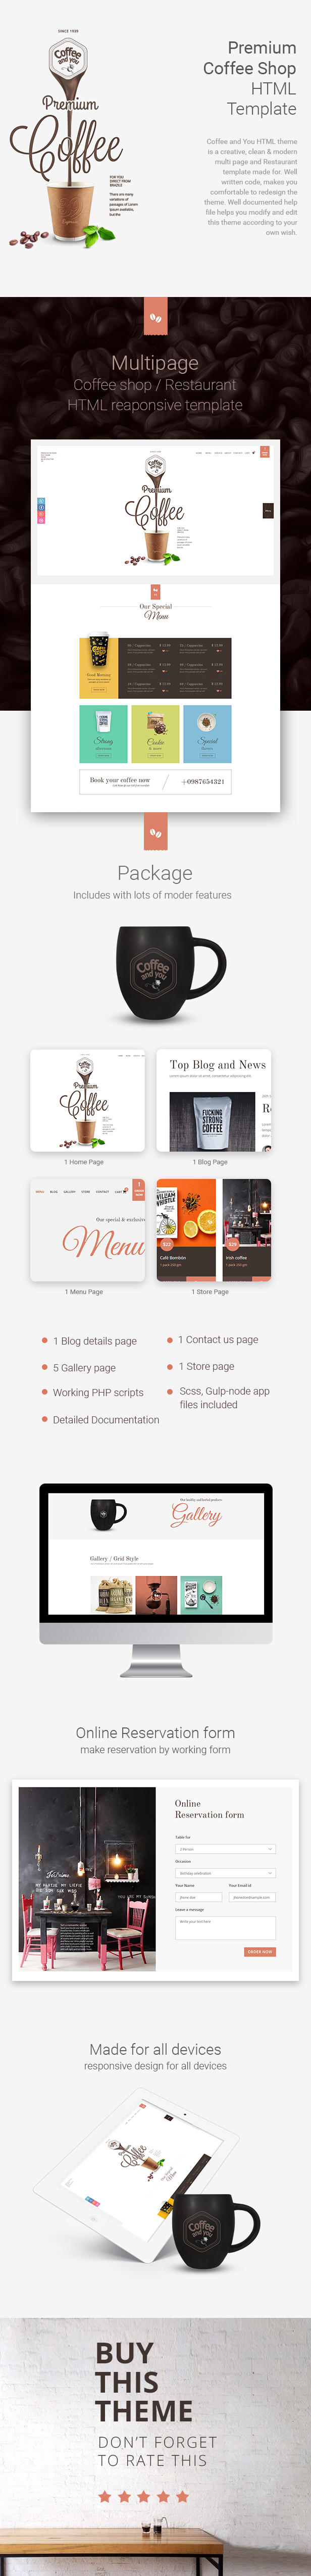 coffee shop multipage html restaurant template site templates themeforest. Black Bedroom Furniture Sets. Home Design Ideas